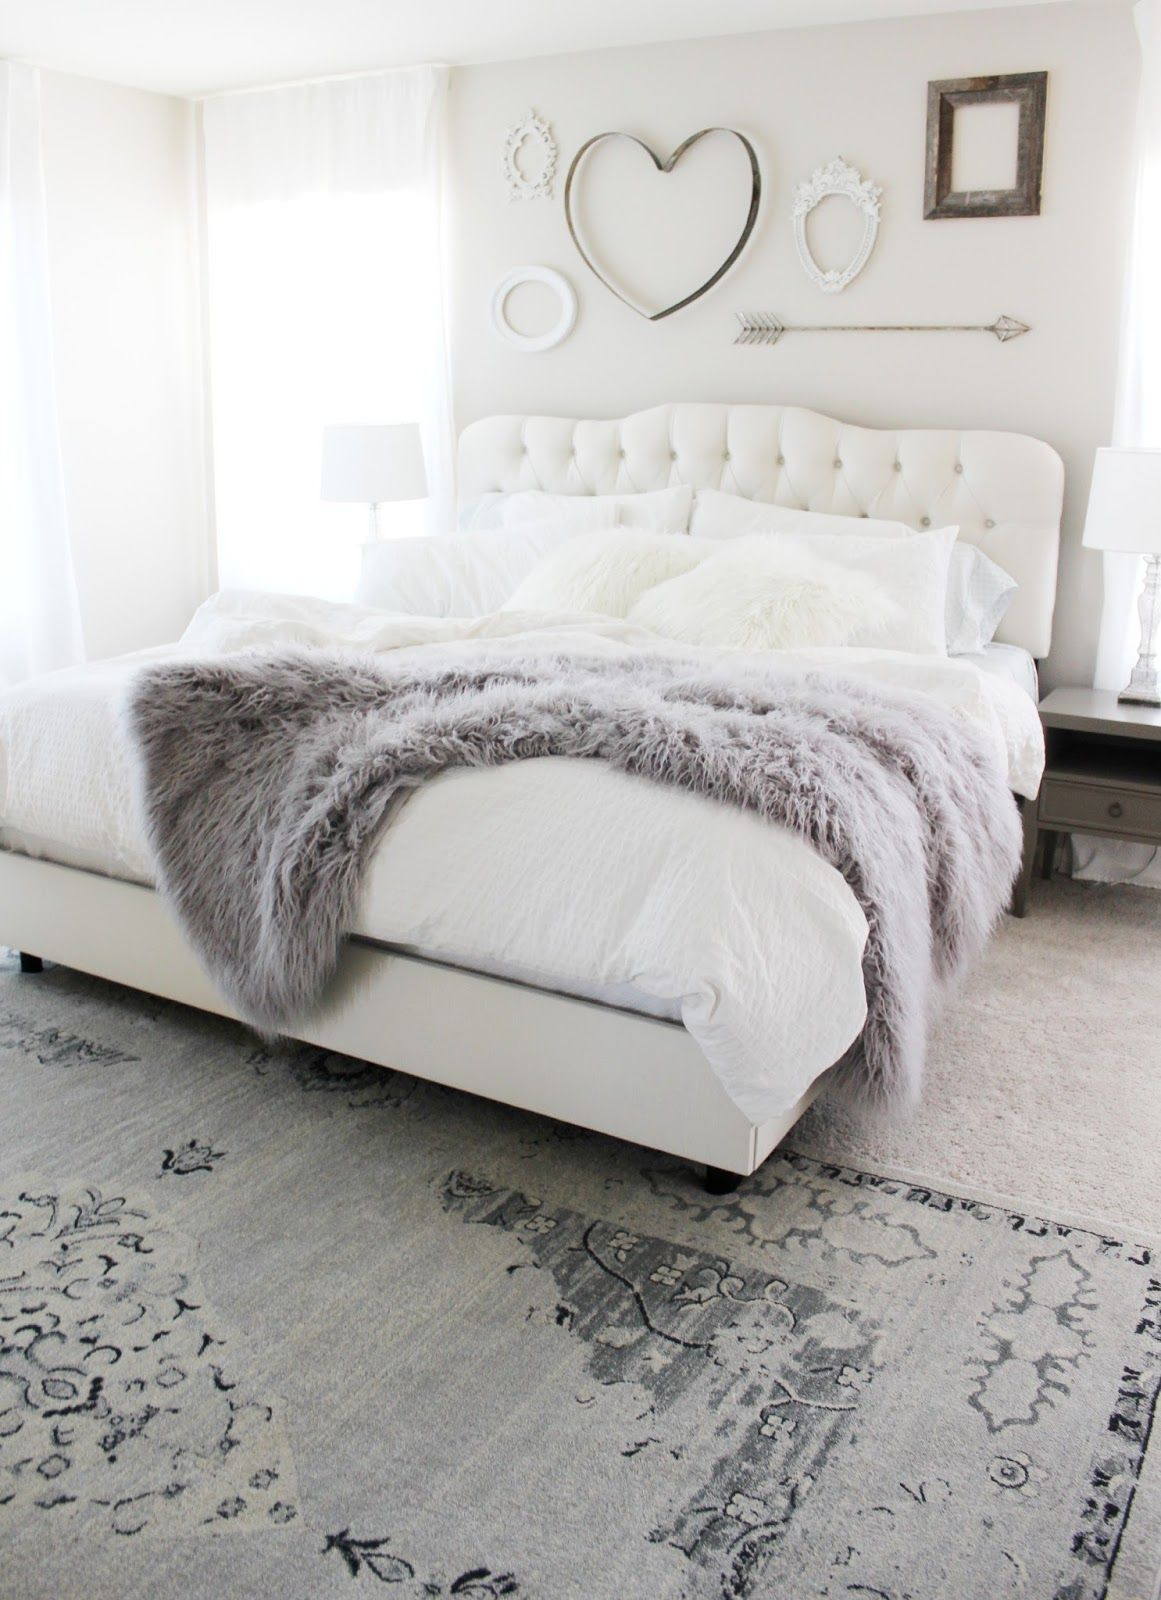 aubrey kinch the blog master bedroom reveal - White Bedroom Decorating Ideas